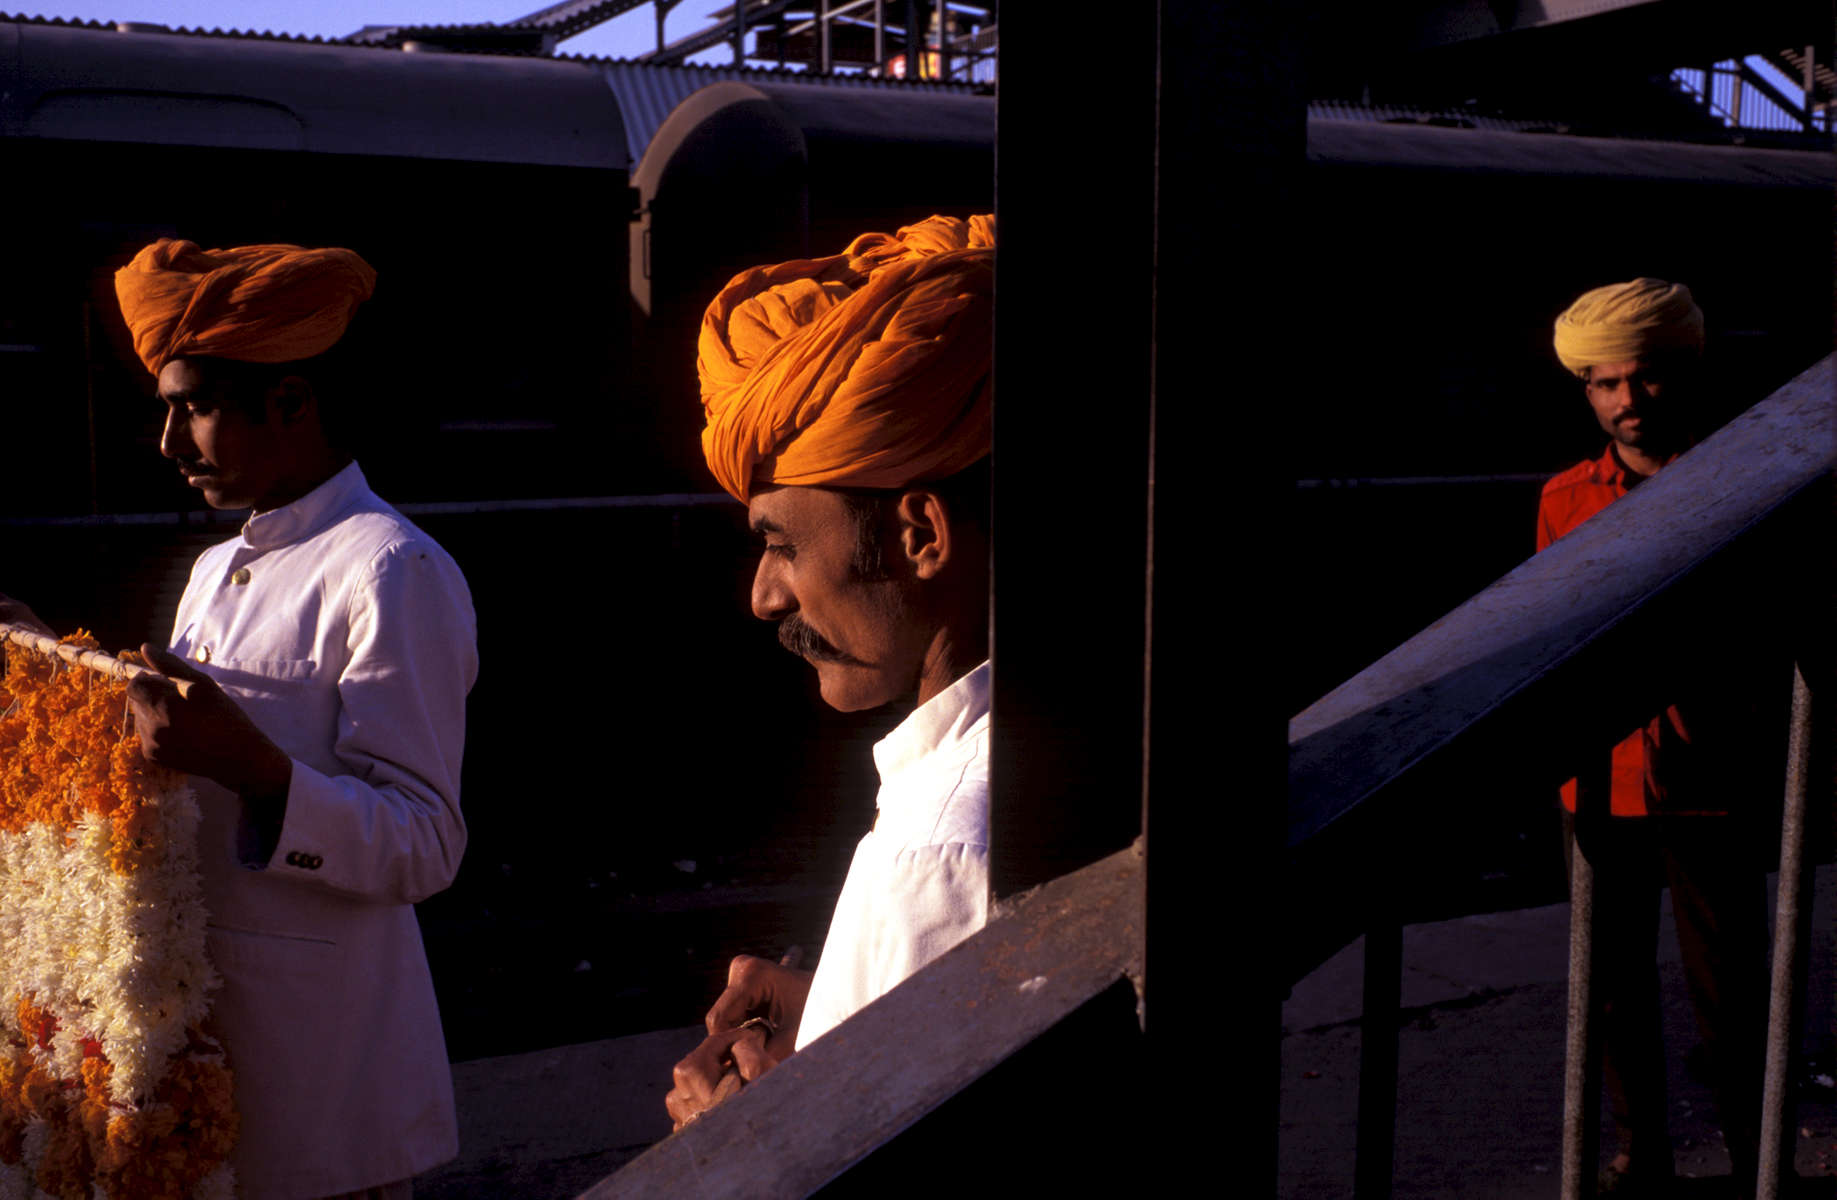 Waiting at the train station in Jodhpur, India for the Barat (groom) party to arrive and be greeted with garlands, flowered necklaces. The Barat party are from the Gaur clan from the northern state of Himalchel Pradesh. The royal wedding will unite the Rathore and Gaur clans. 1998